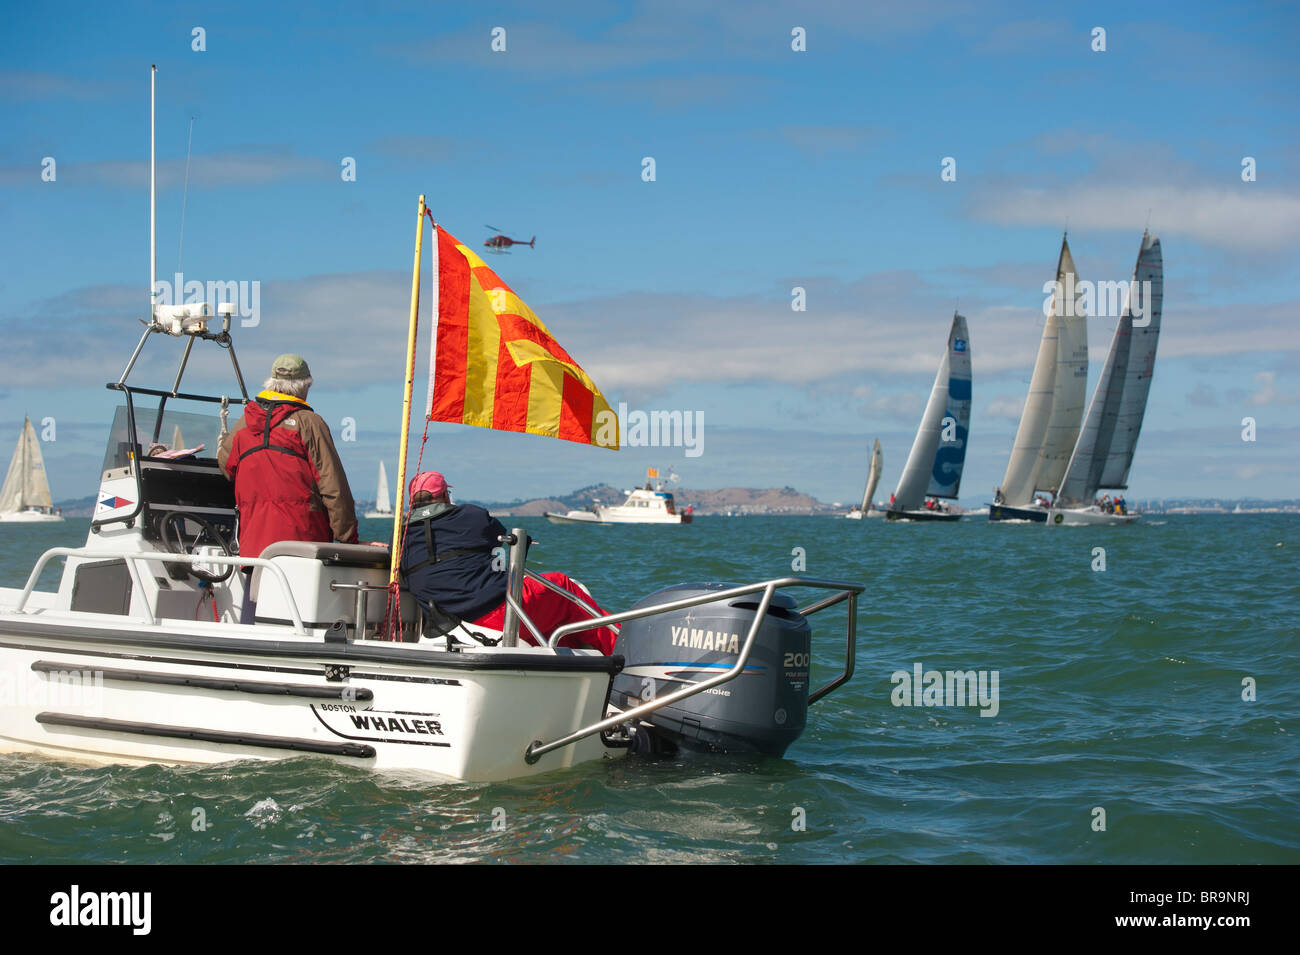 start of irc a division race 6, overseen by the st. francis race committee Stock Photo